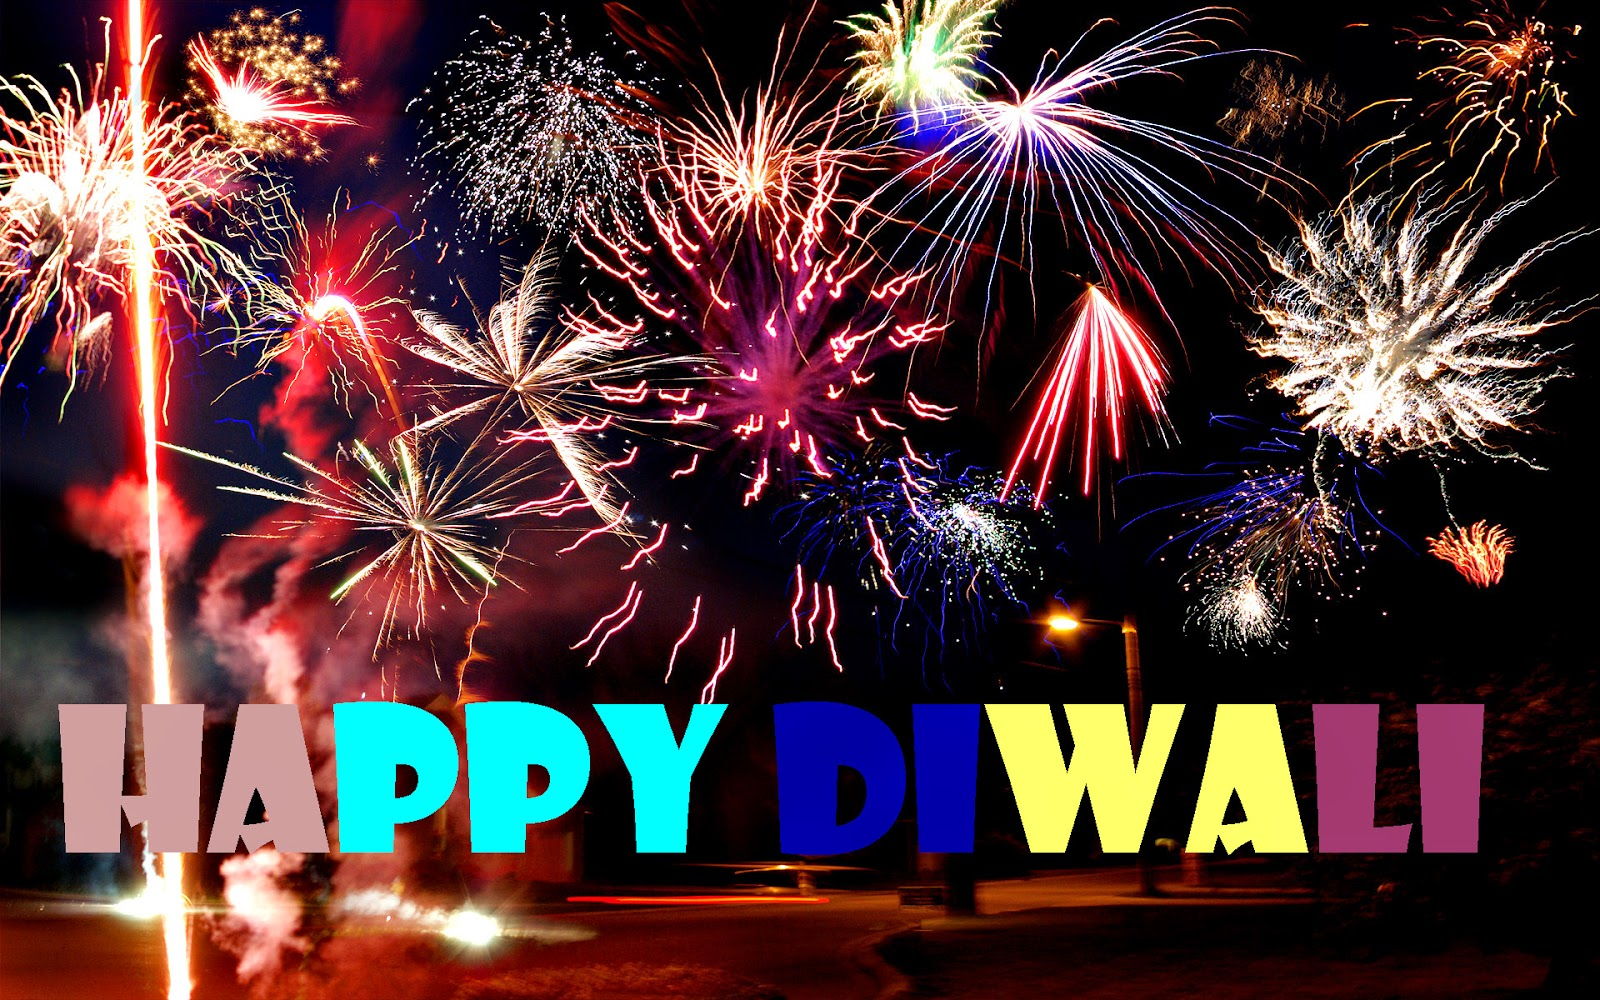 happy diwali with fireworks image